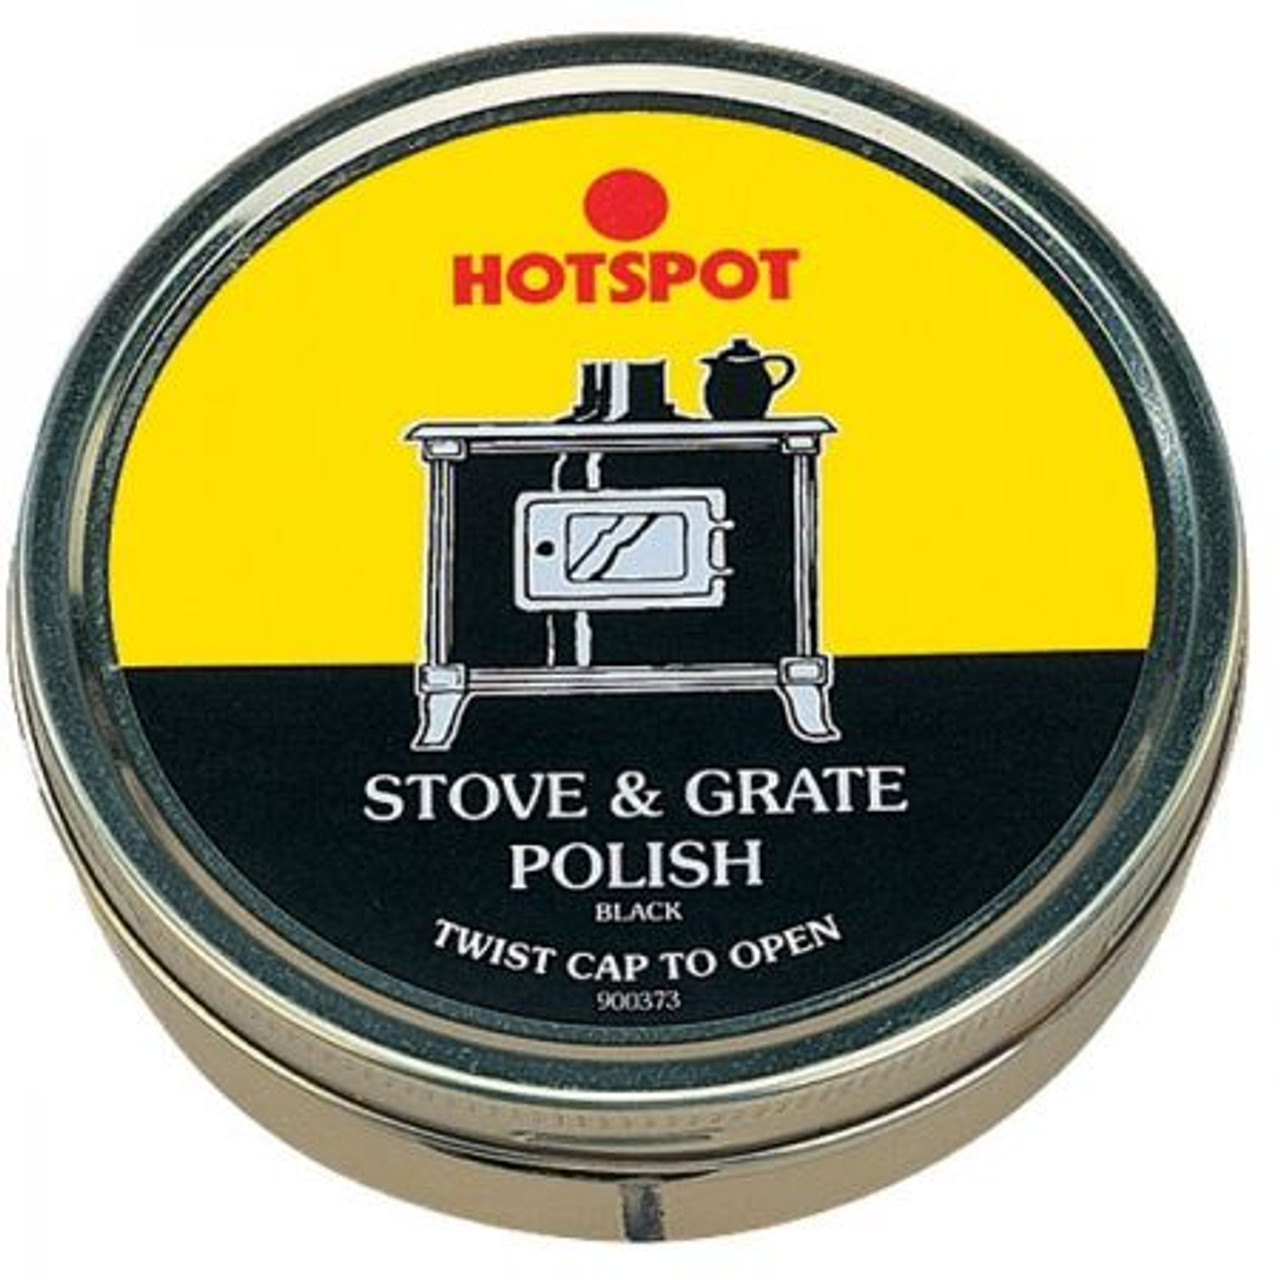 Manor Hotspot Stove & Grate Polish